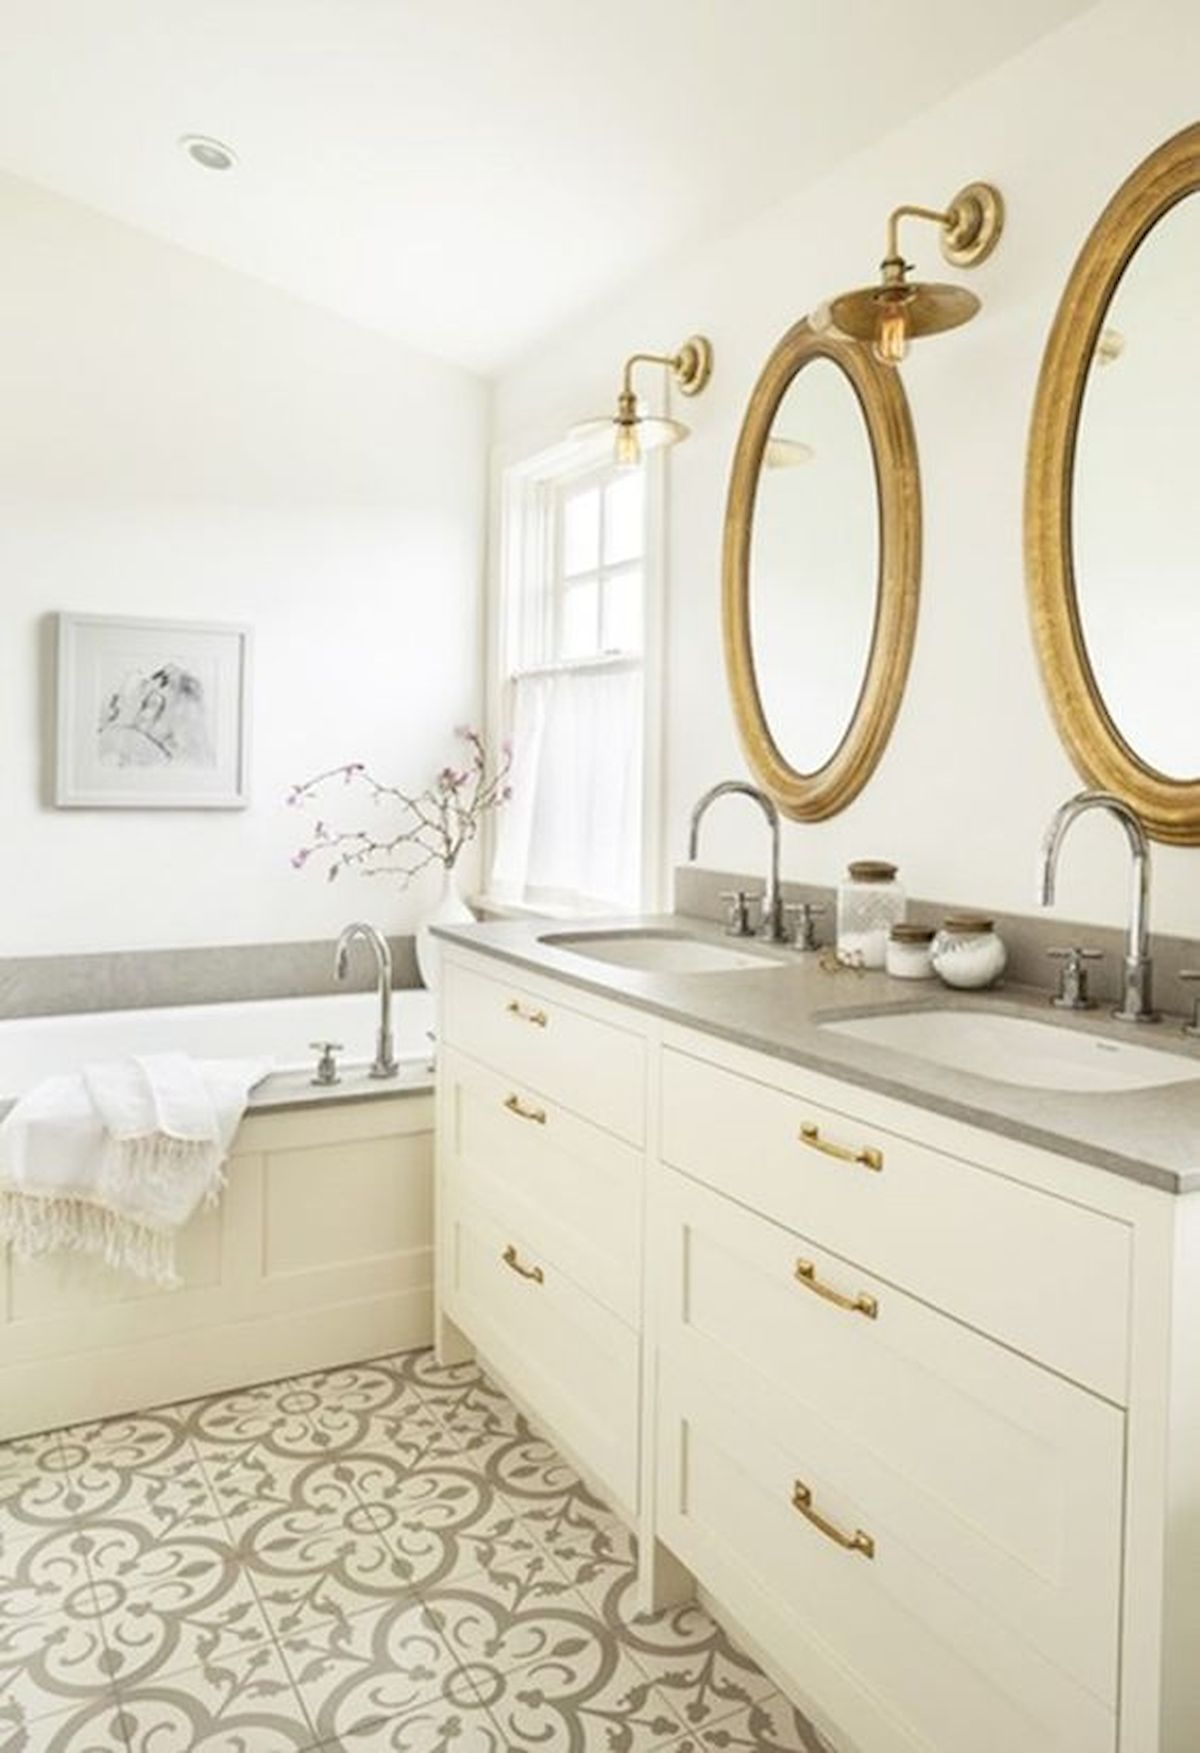 60 fantastic farmhouse bathroom vanity decor ideas and on beautiful farmhouse bathroom shower decor ideas and remodel an extraordinary design id=25636